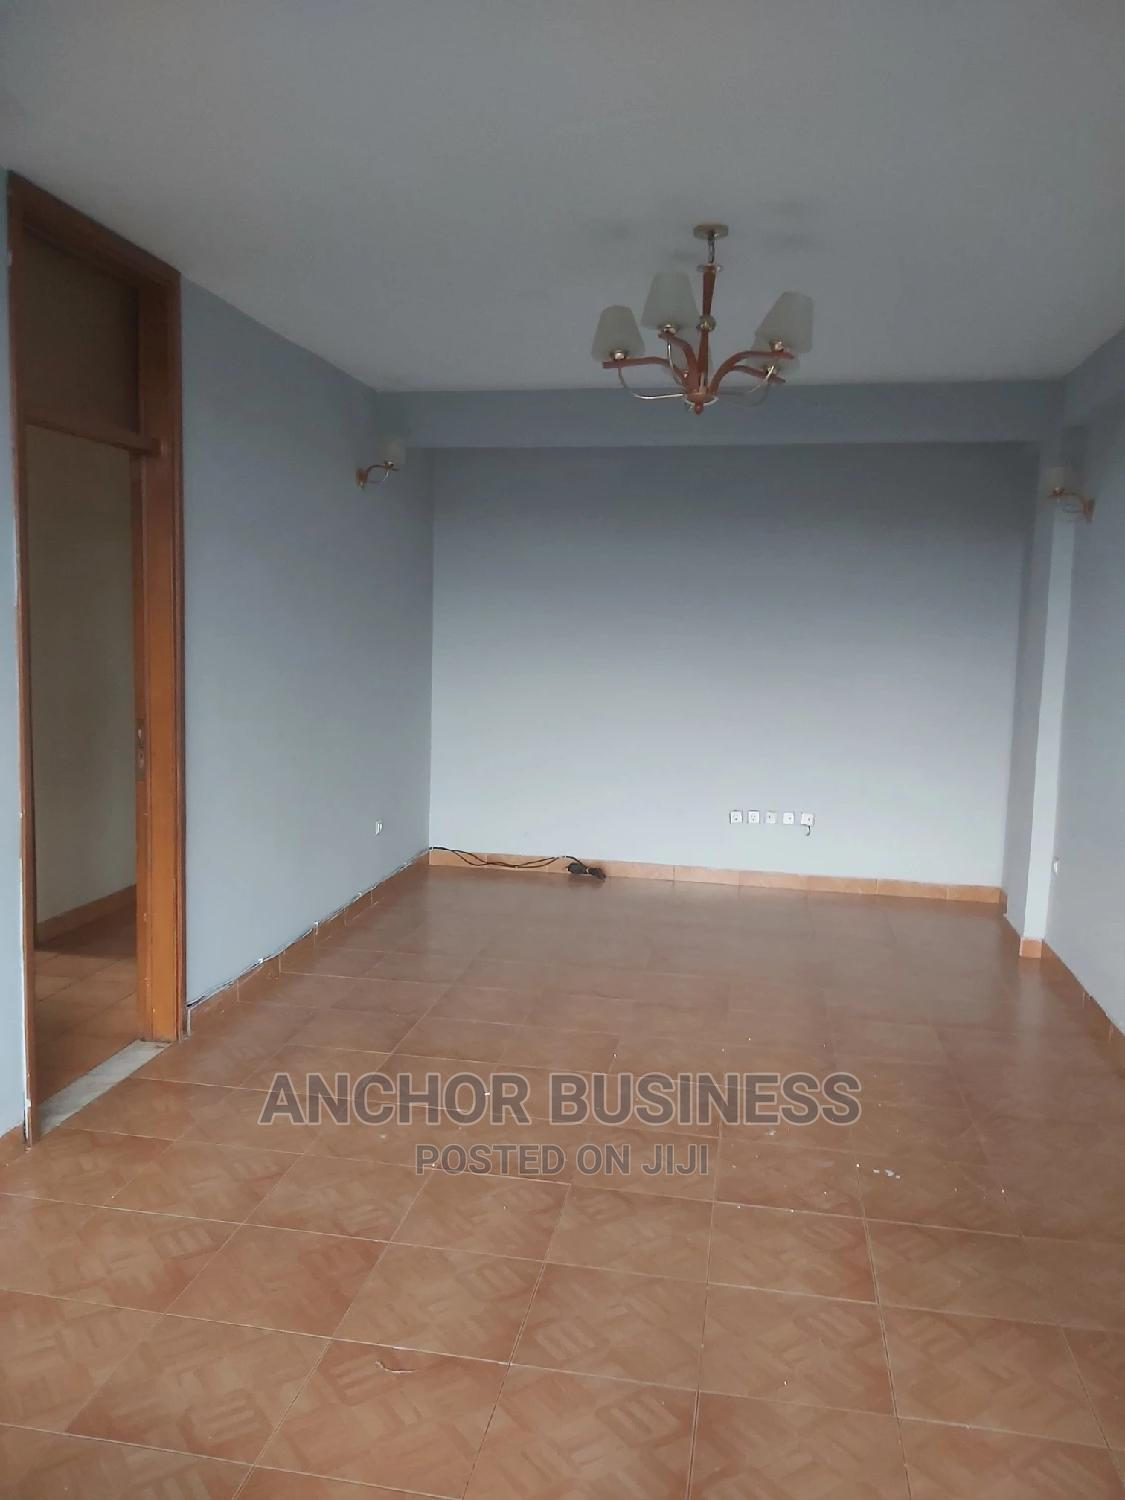 3bdrm Apartment in Anchor Bussiness, Bole for Rent | Houses & Apartments For Rent for sale in Bole, Addis Ababa, Ethiopia